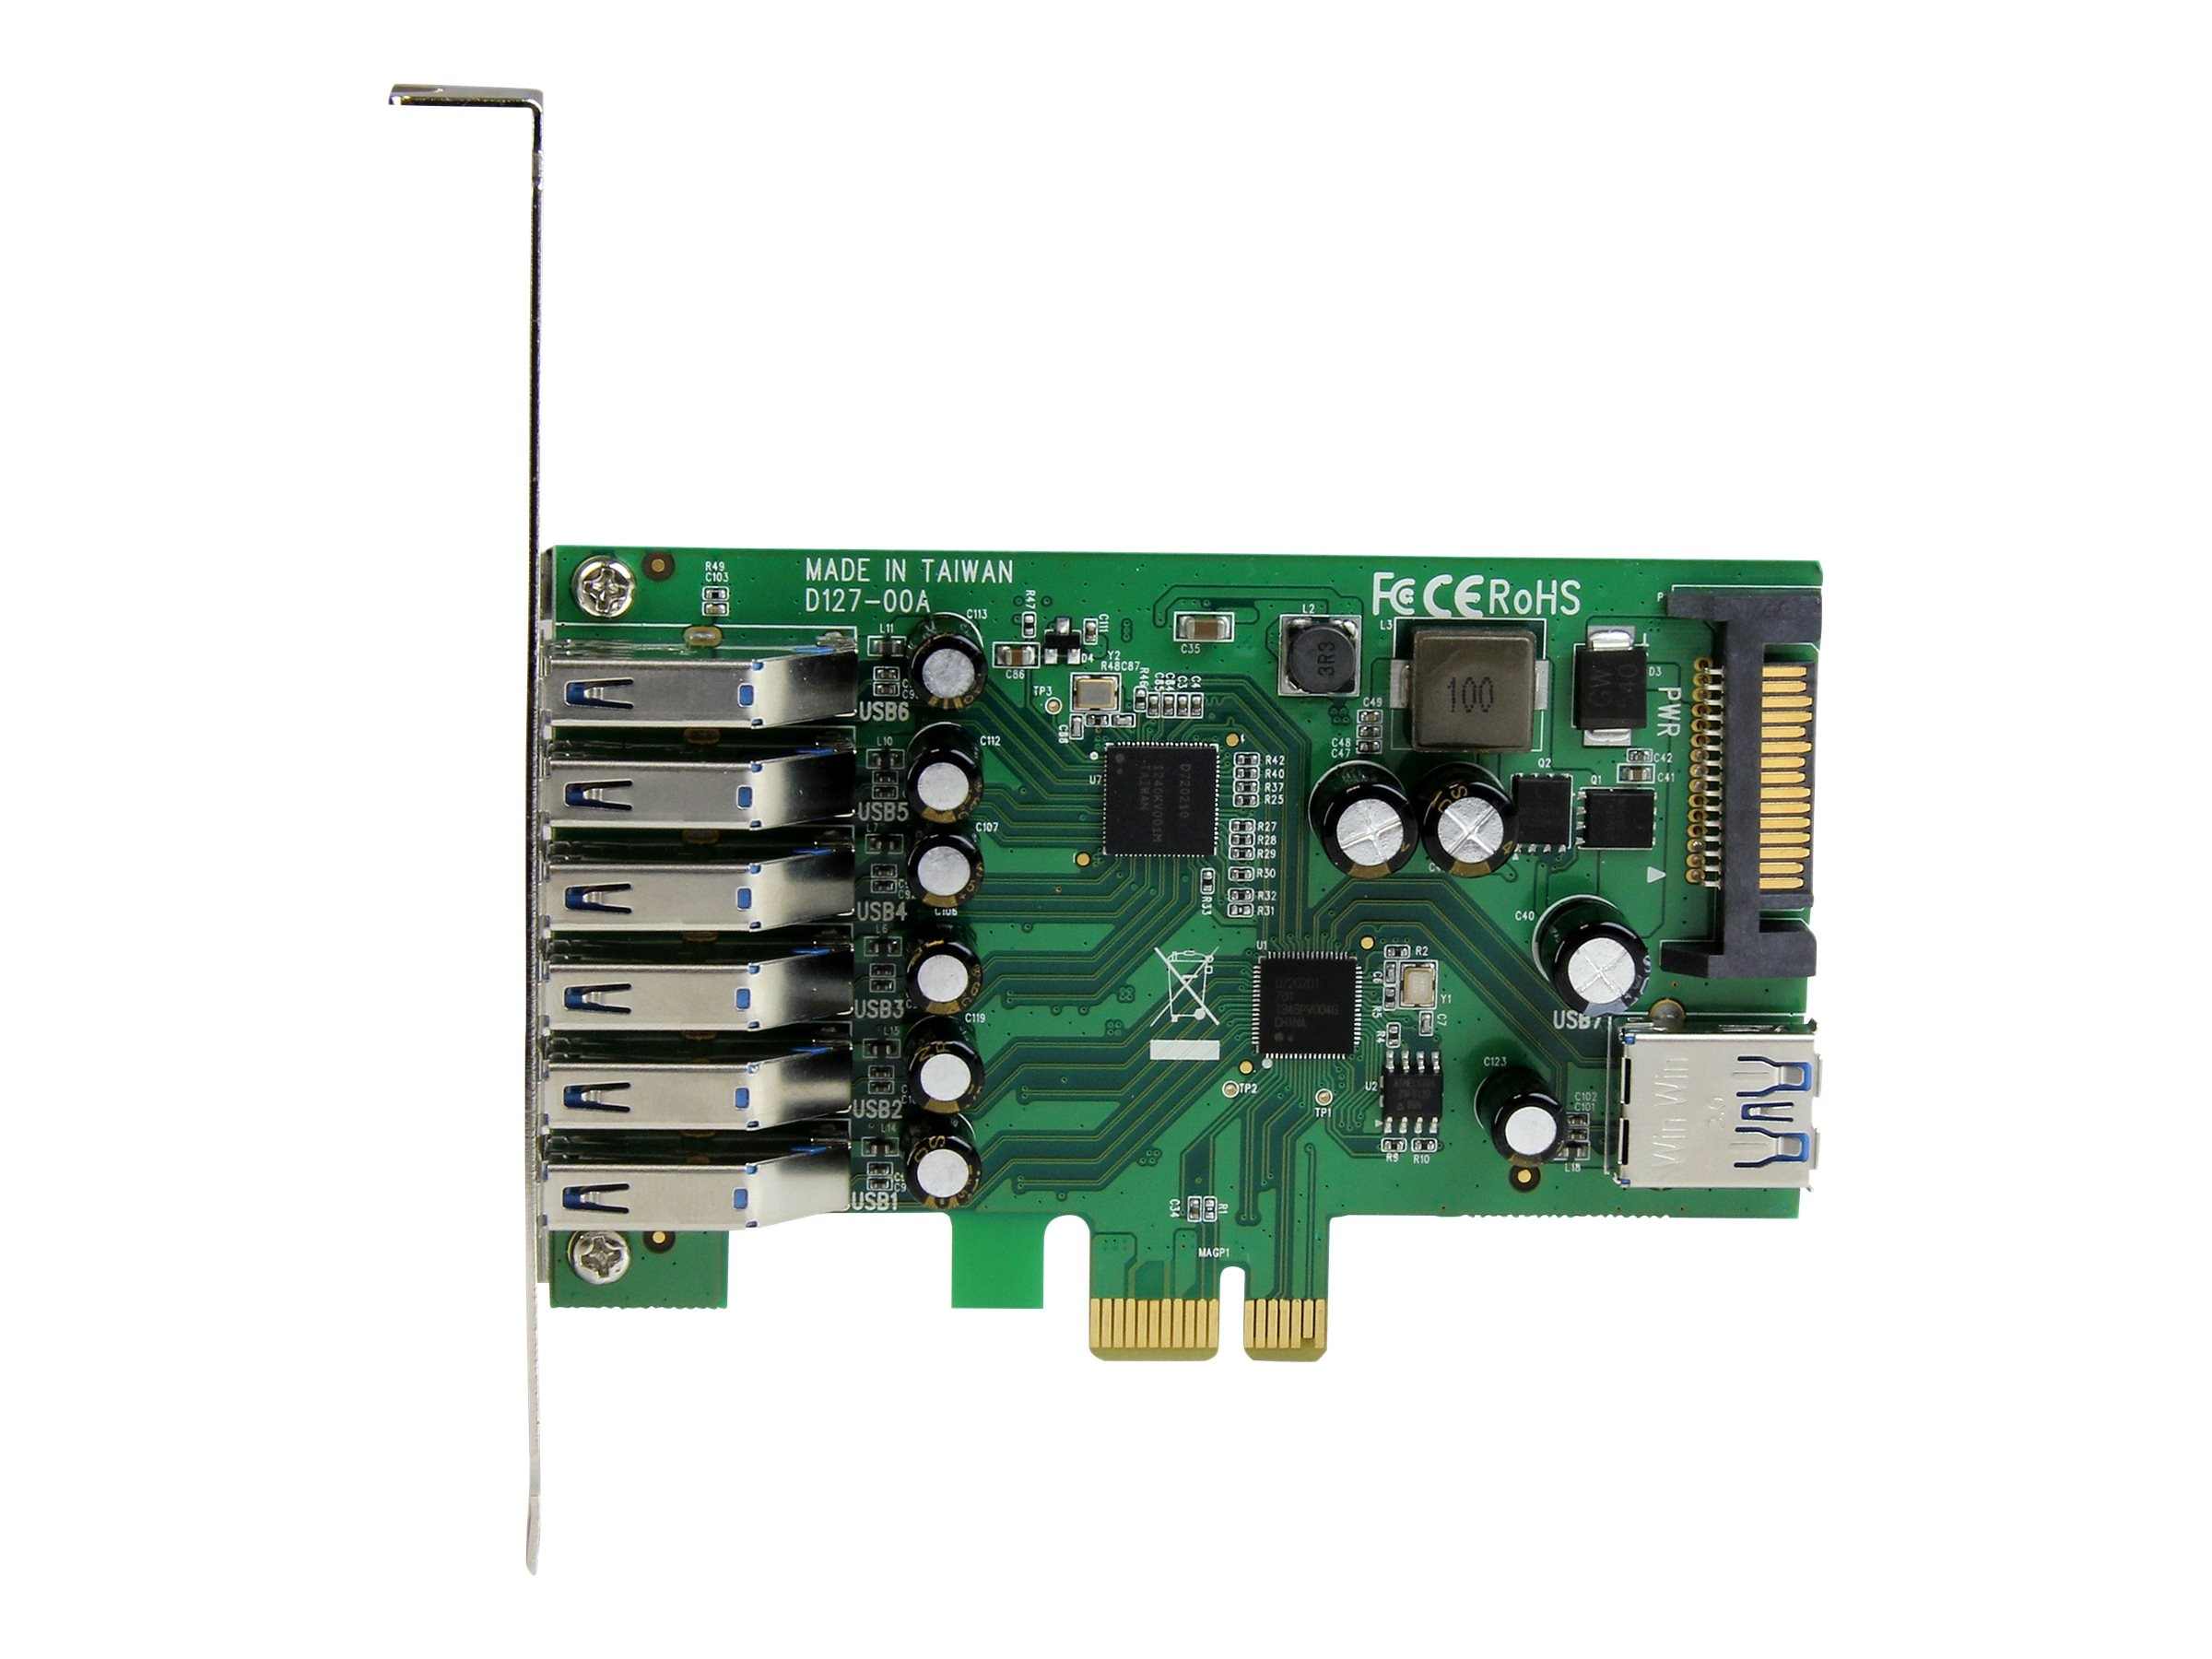 StarTech.com 7-port PCI Express USB 3.0 Card - Standard and Low-Profile Design, PEXUSB3S7